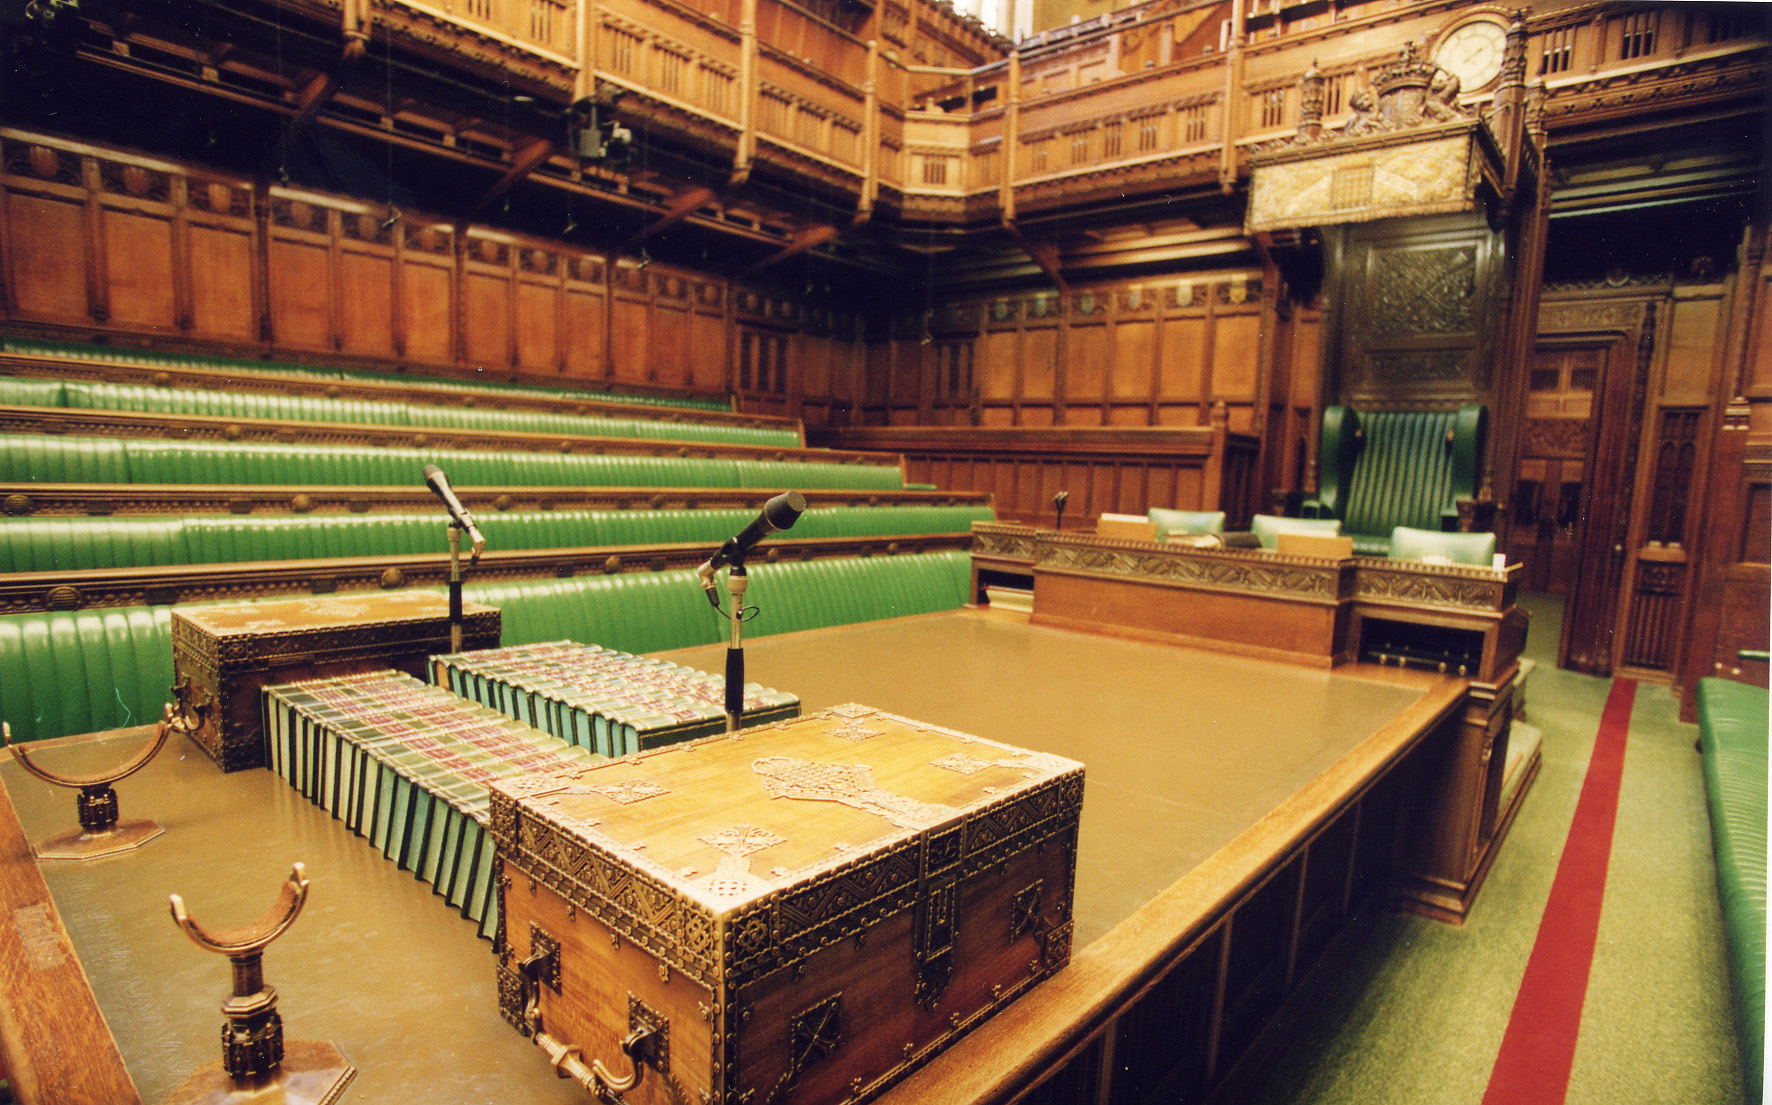 Single parliamentary chamber